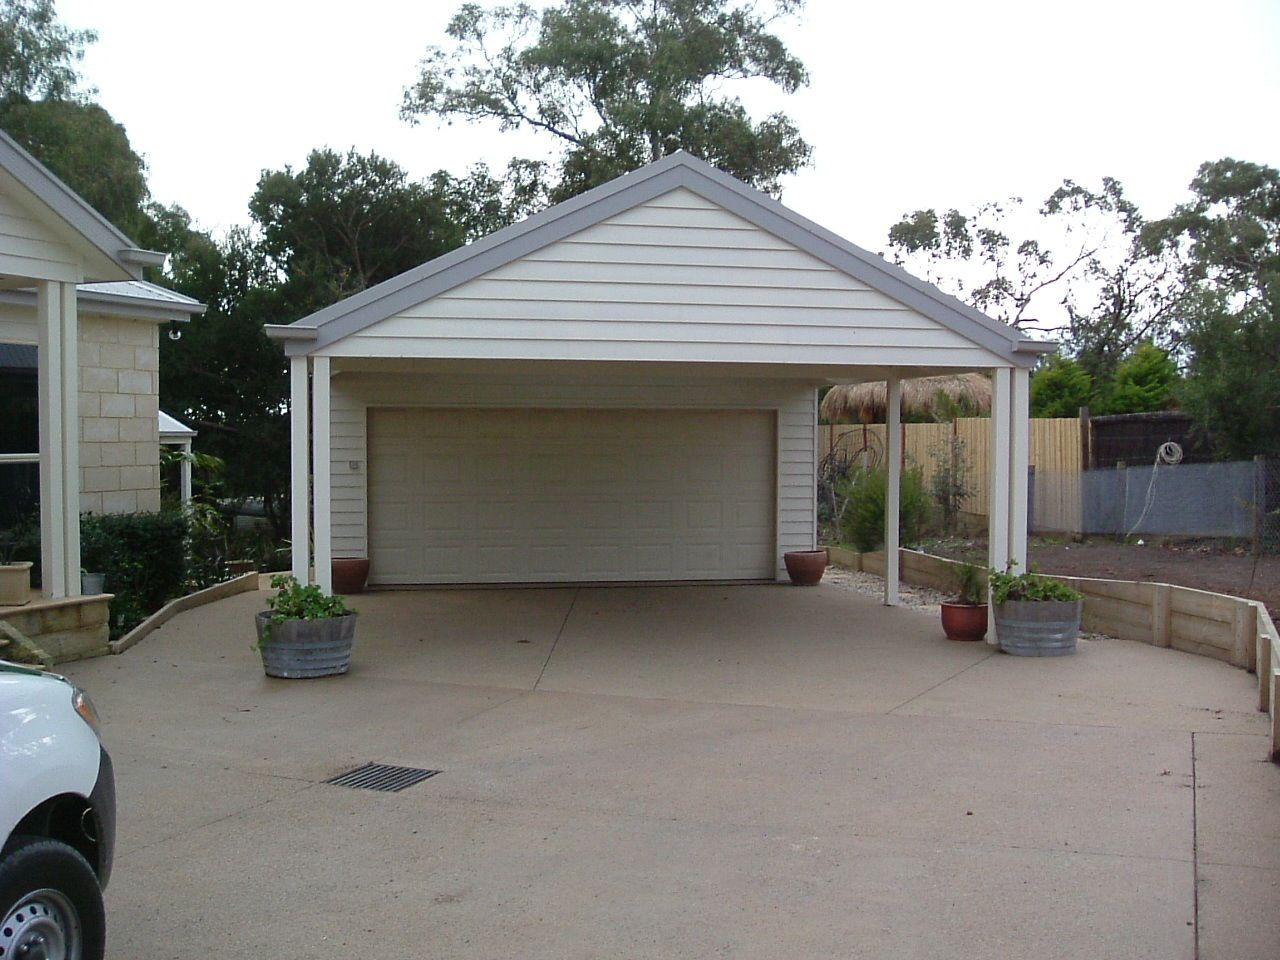 Carport ideas carport ideas pinterest carport ideas for Garage with carport designs